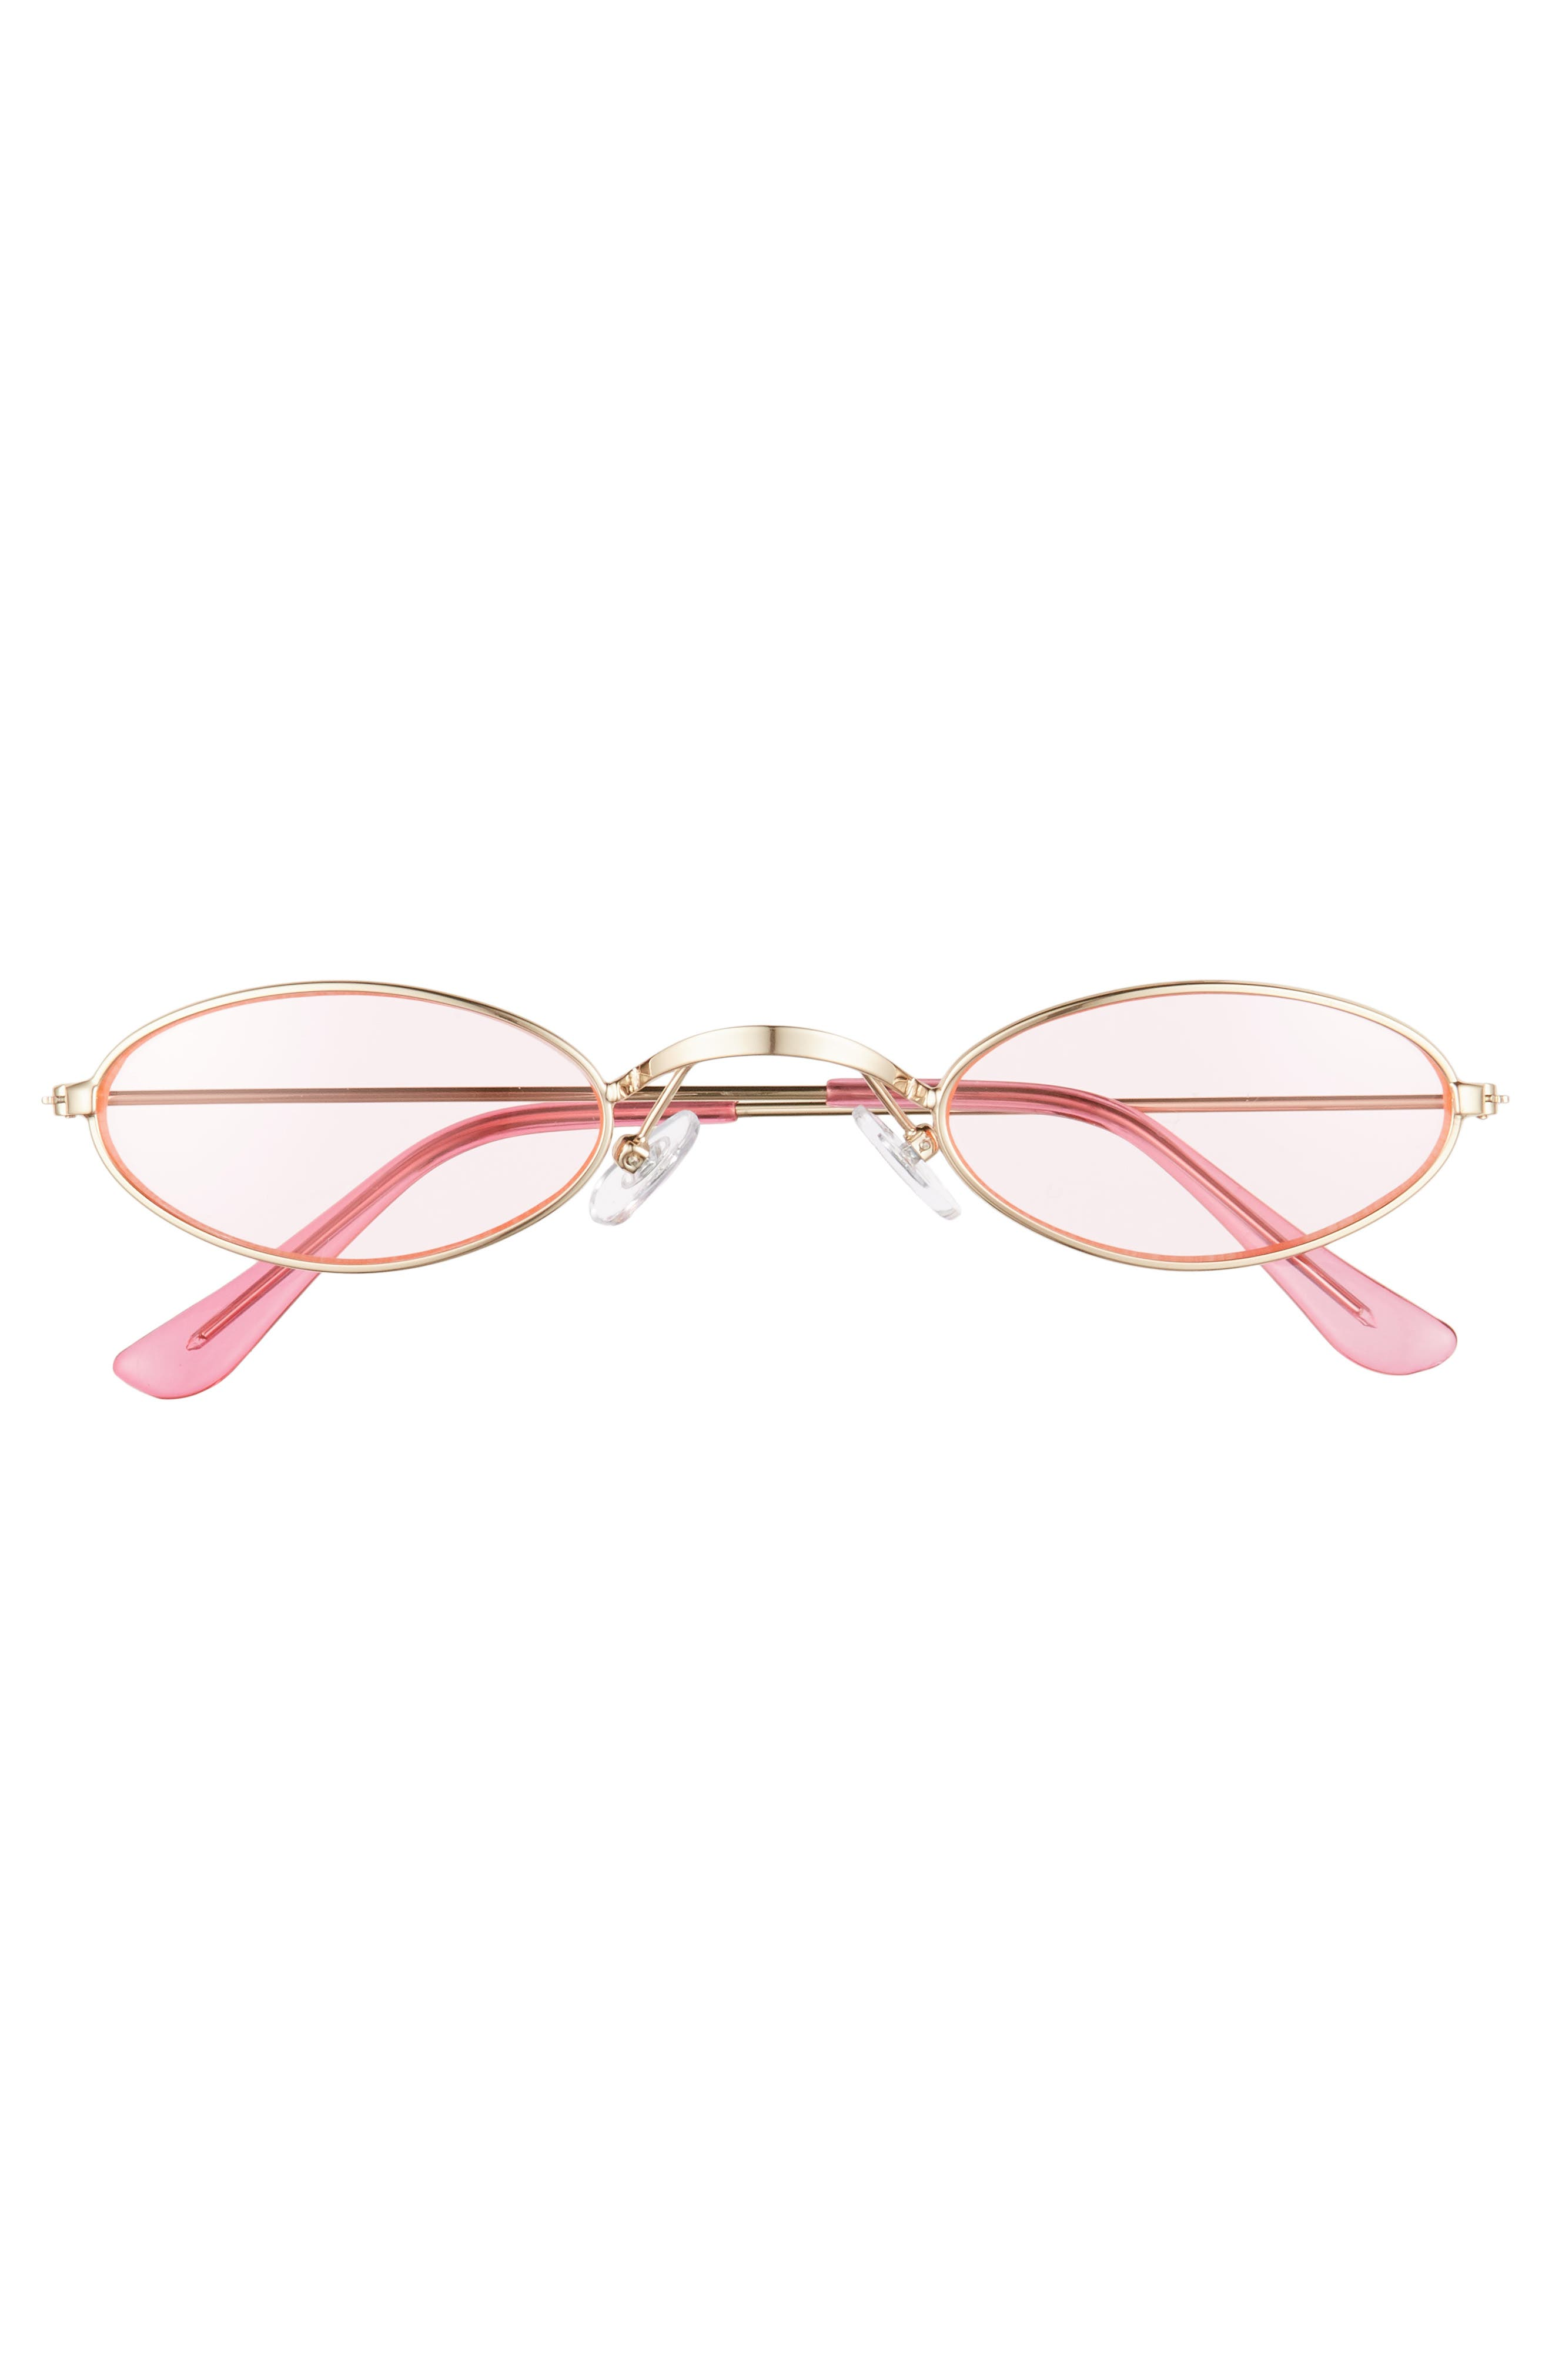 48mm Mini Wide Oval Metal Sunglasses,                             Alternate thumbnail 3, color,                             PINK/ GOLD